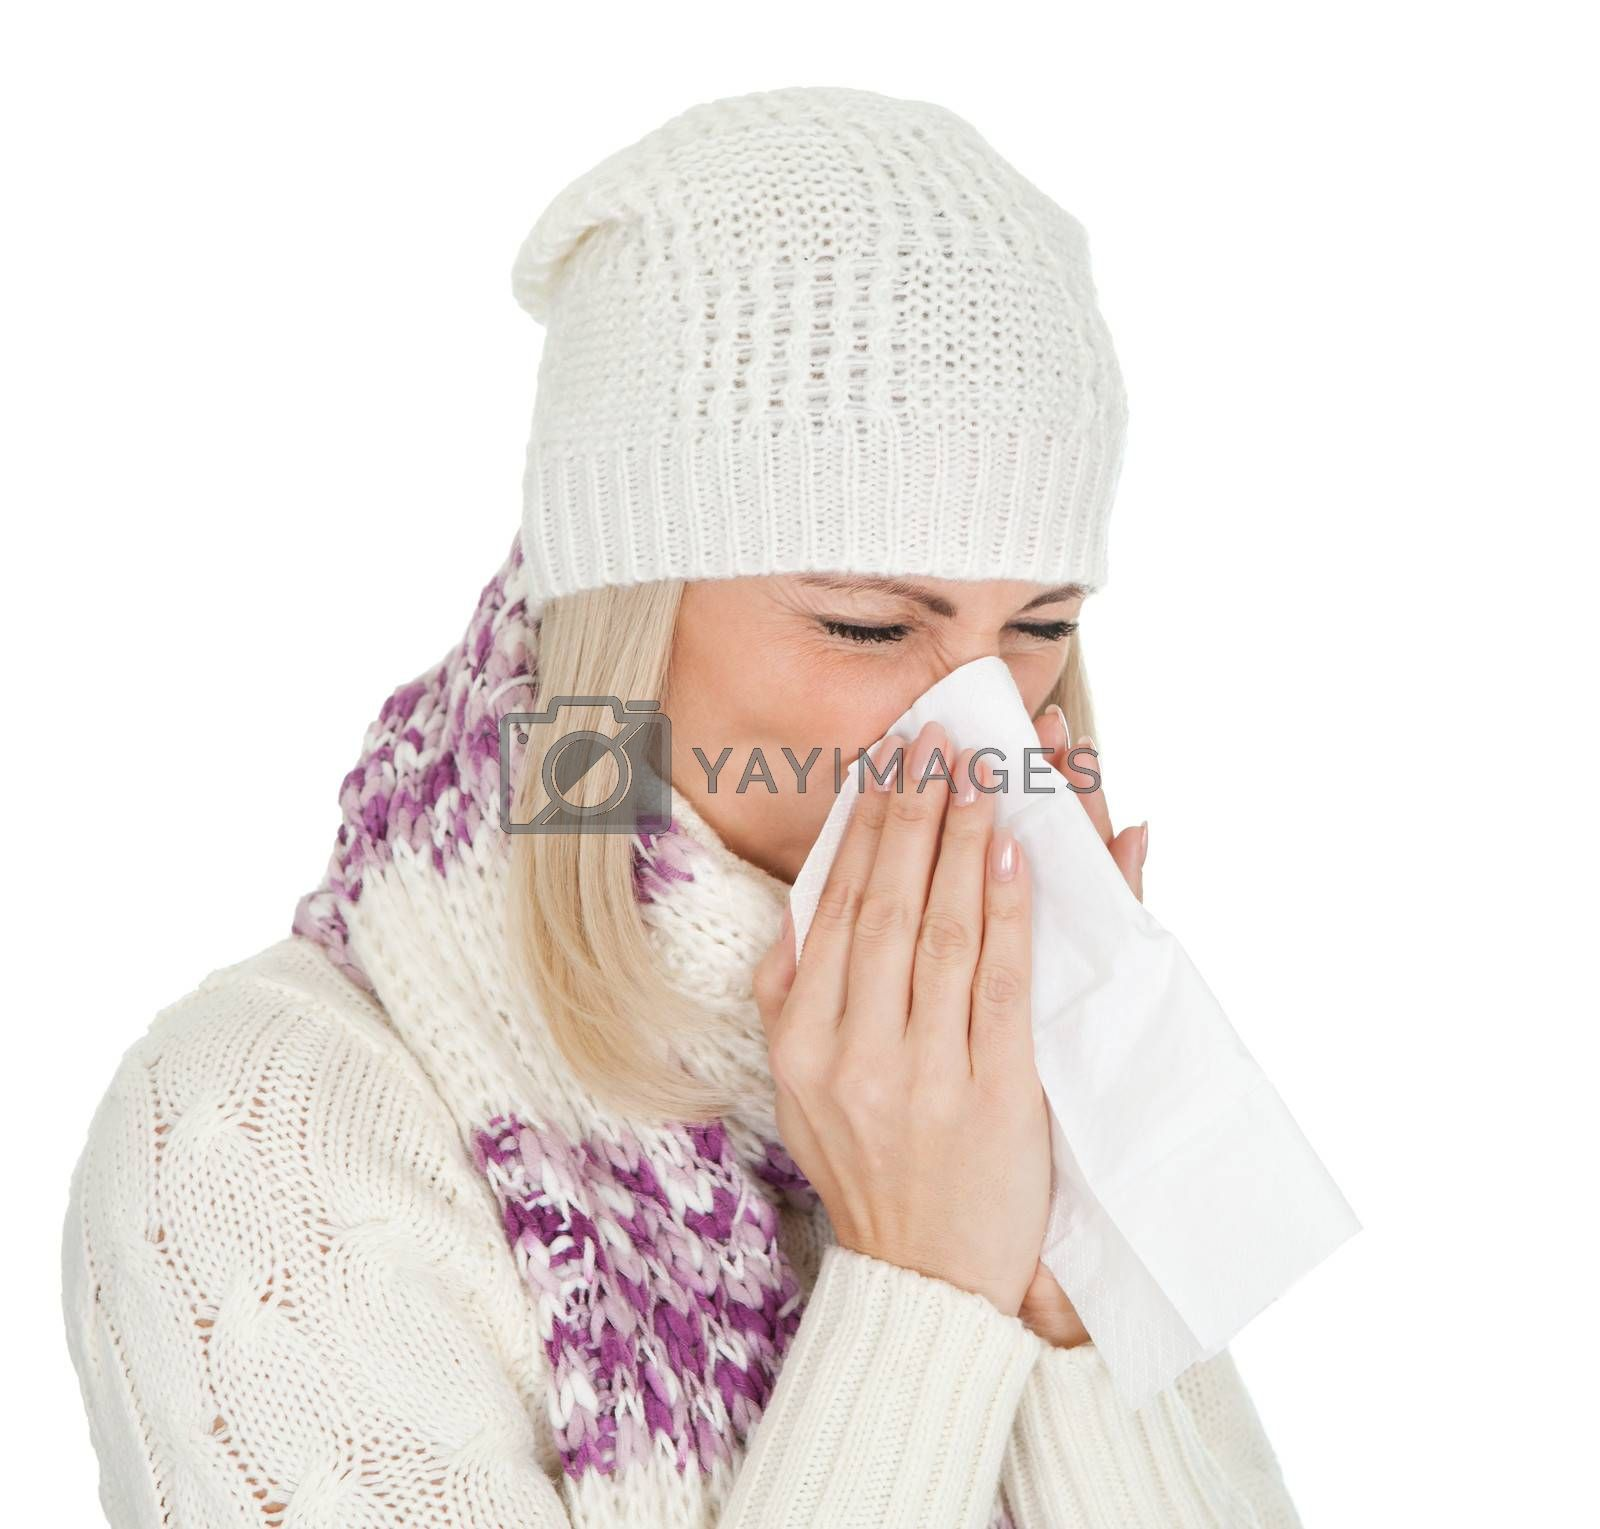 Woman in warm winter clothing sneezing from cold. Isolated on white